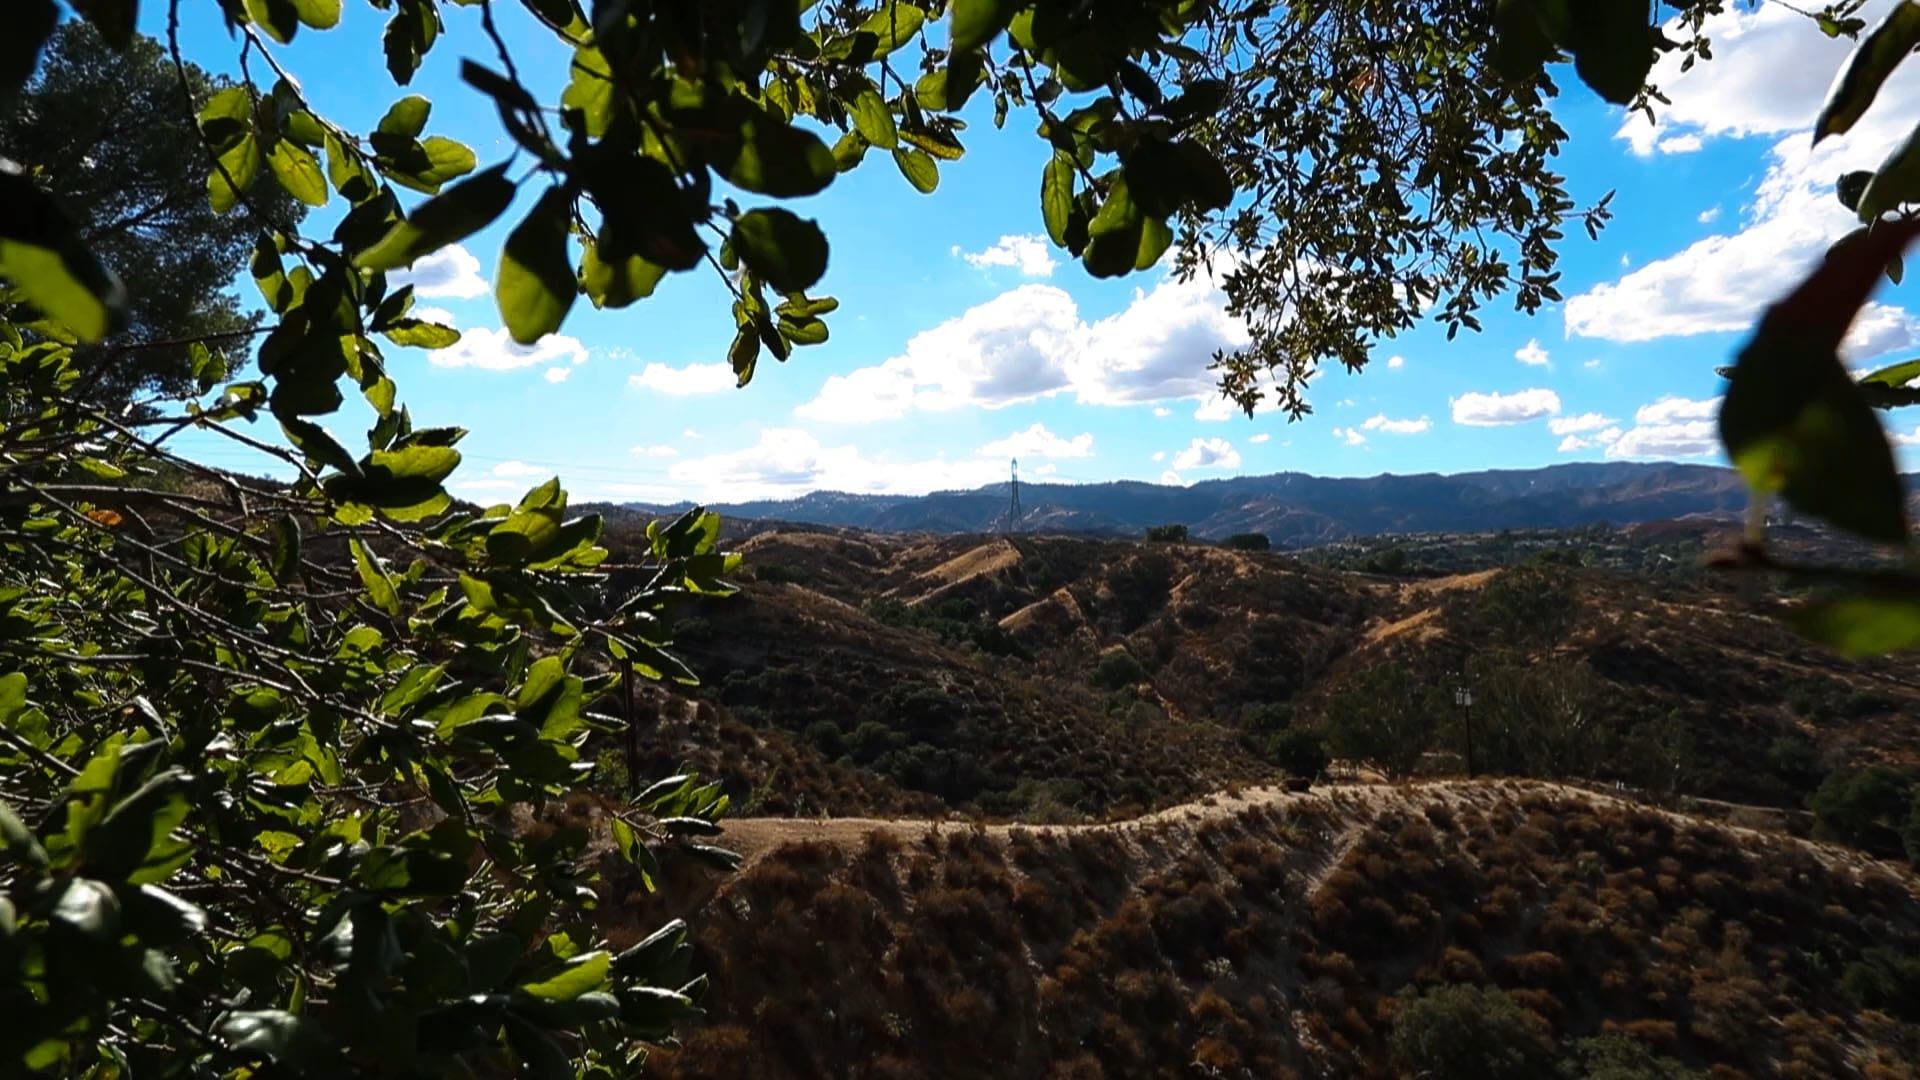 View of hills from the trees